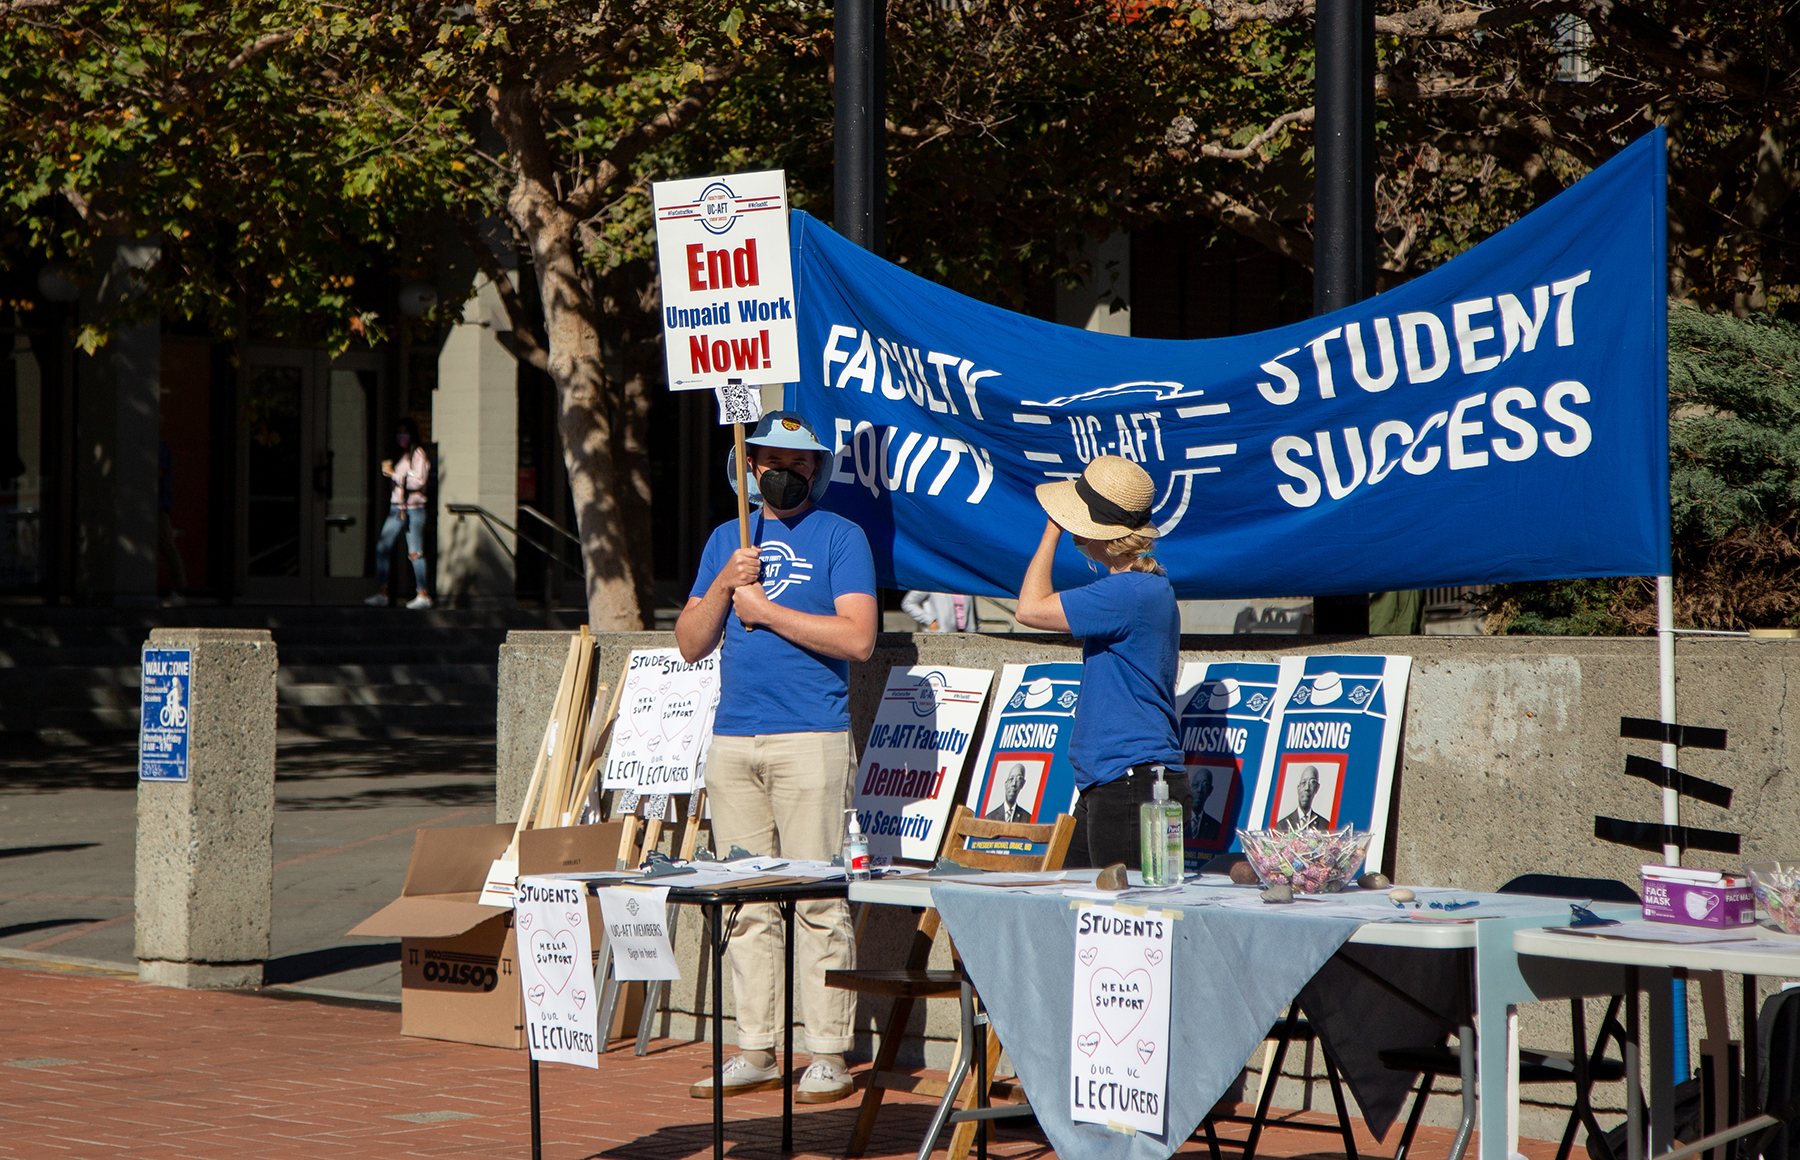 Lecturers organize rallies to call on UC for job security, fair salaries